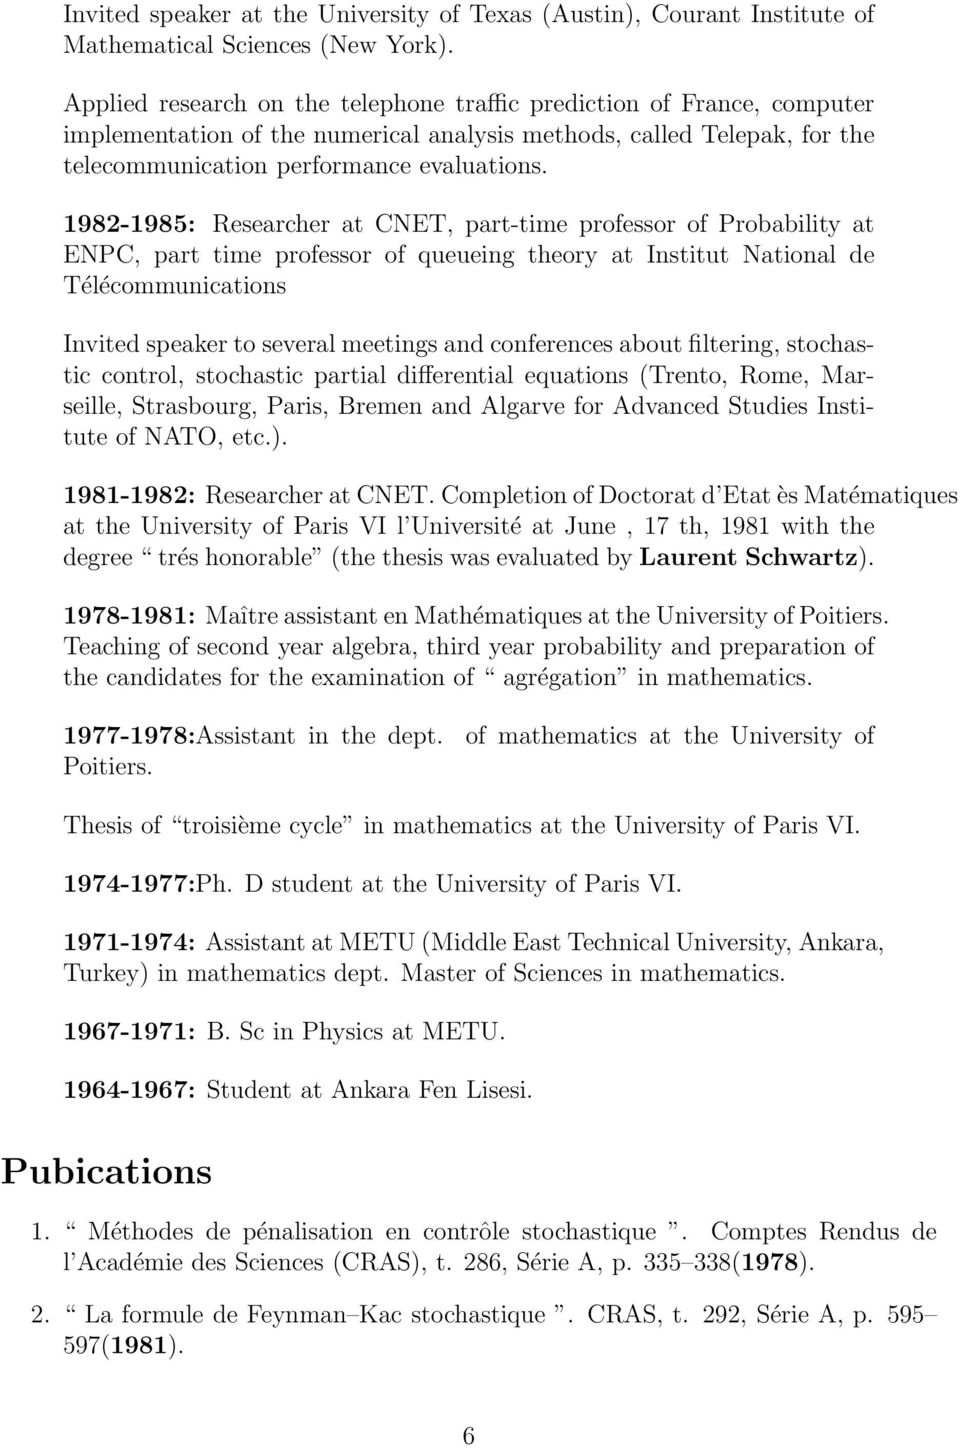 1982-1985: Researcher at CNET, part-time professor of Probability at ENPC, part time professor of queueing theory at Institut National de Télécommunications Invited speaker to several meetings and